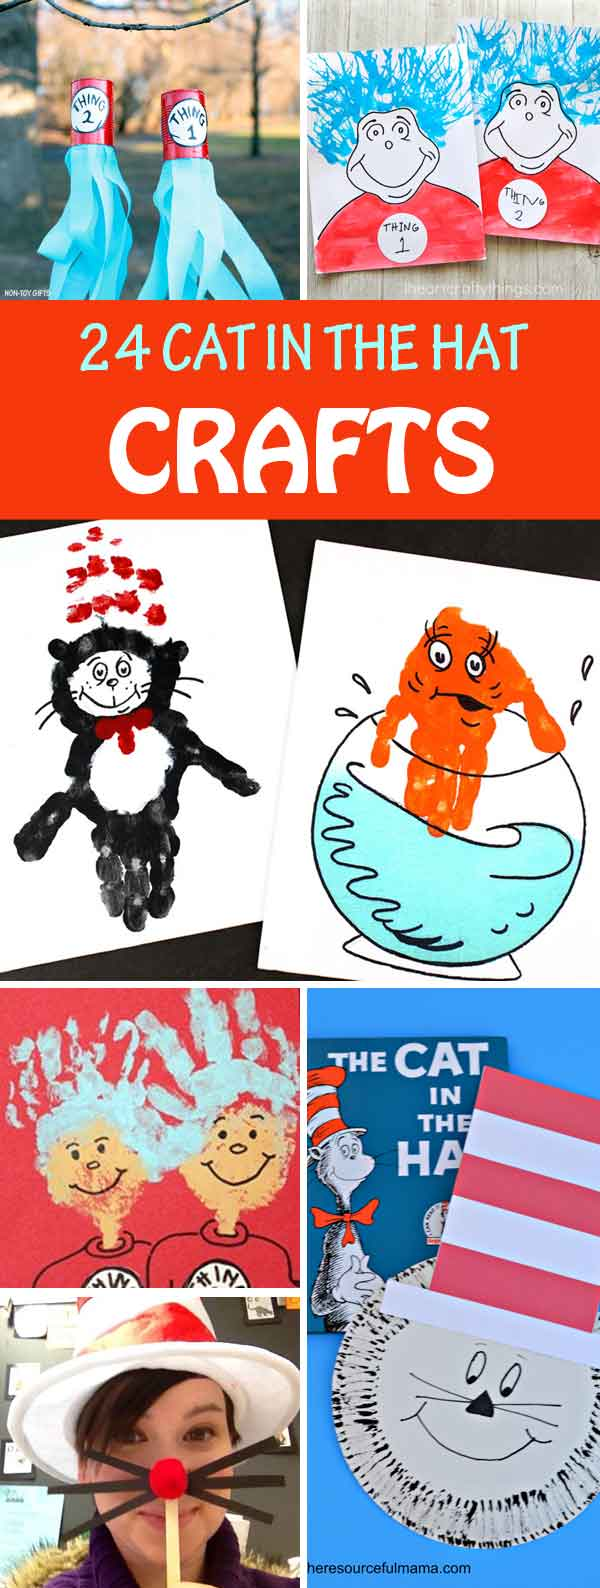 Cat in the Hat crafts to celebrate Dr Seuss birthday.